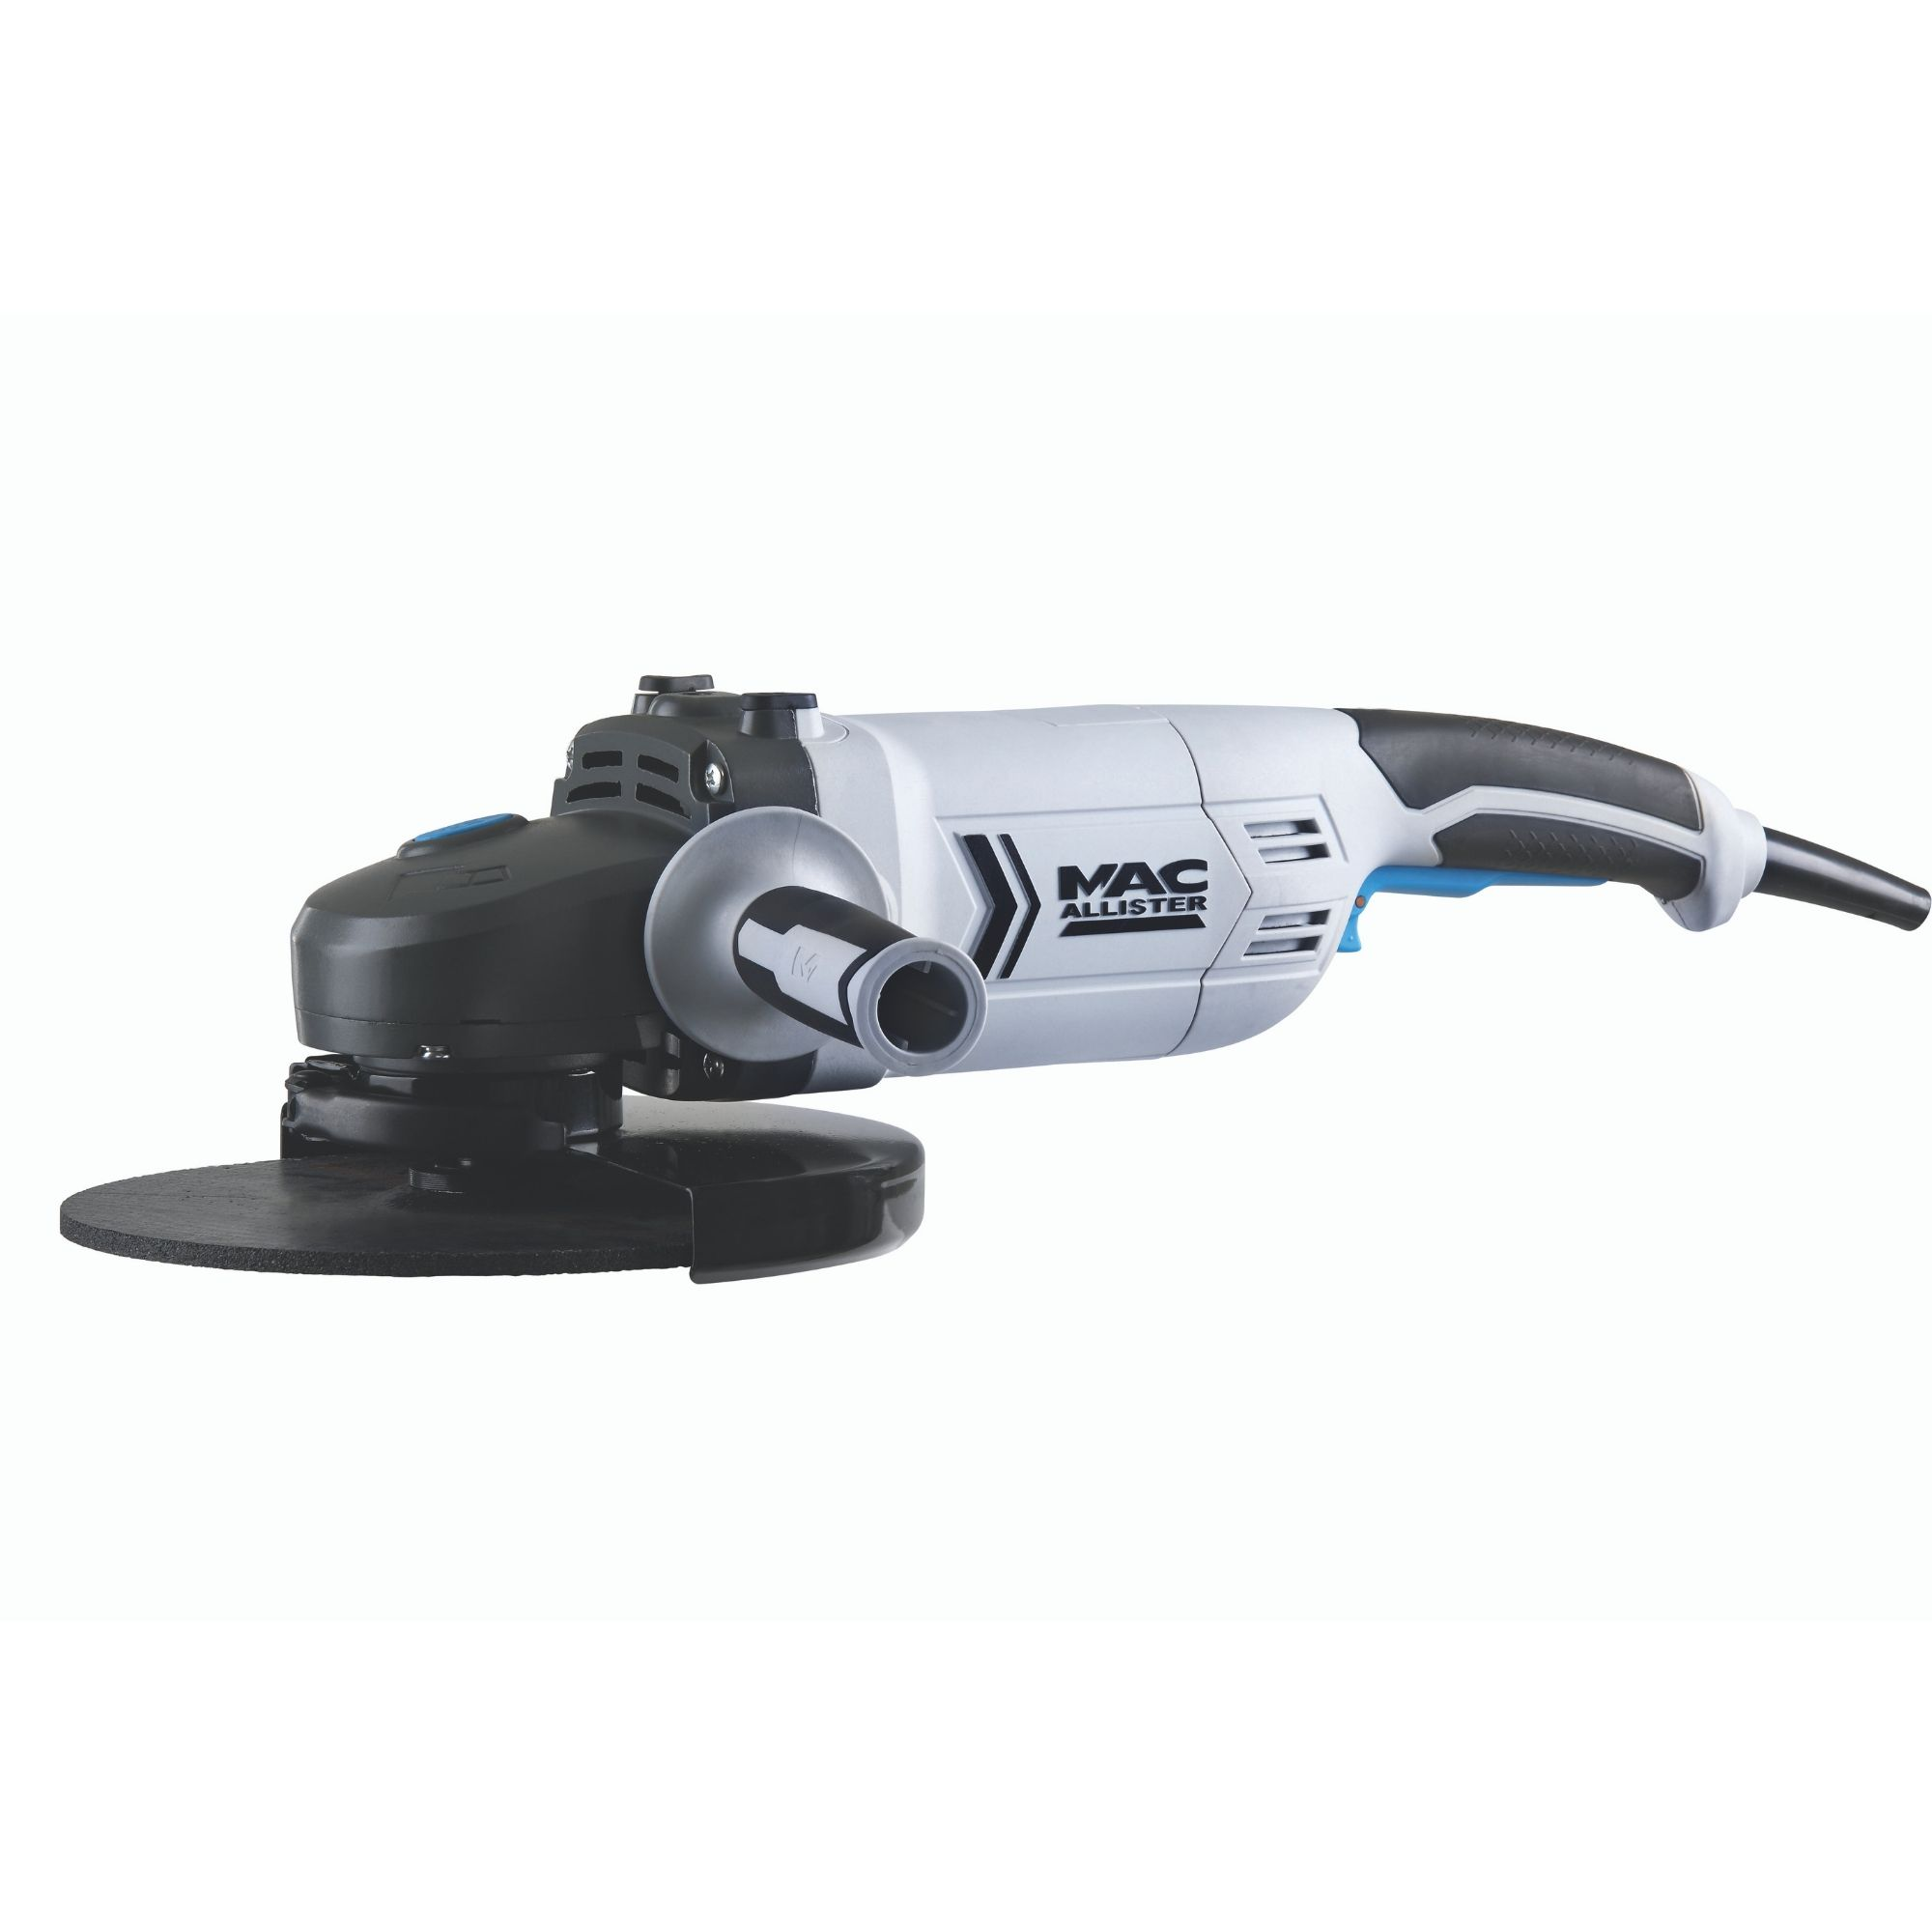 Mac Allister 2000W 220-240V 230mm Angle grinder MSAG2000 | Departments |  DIY at B&Q